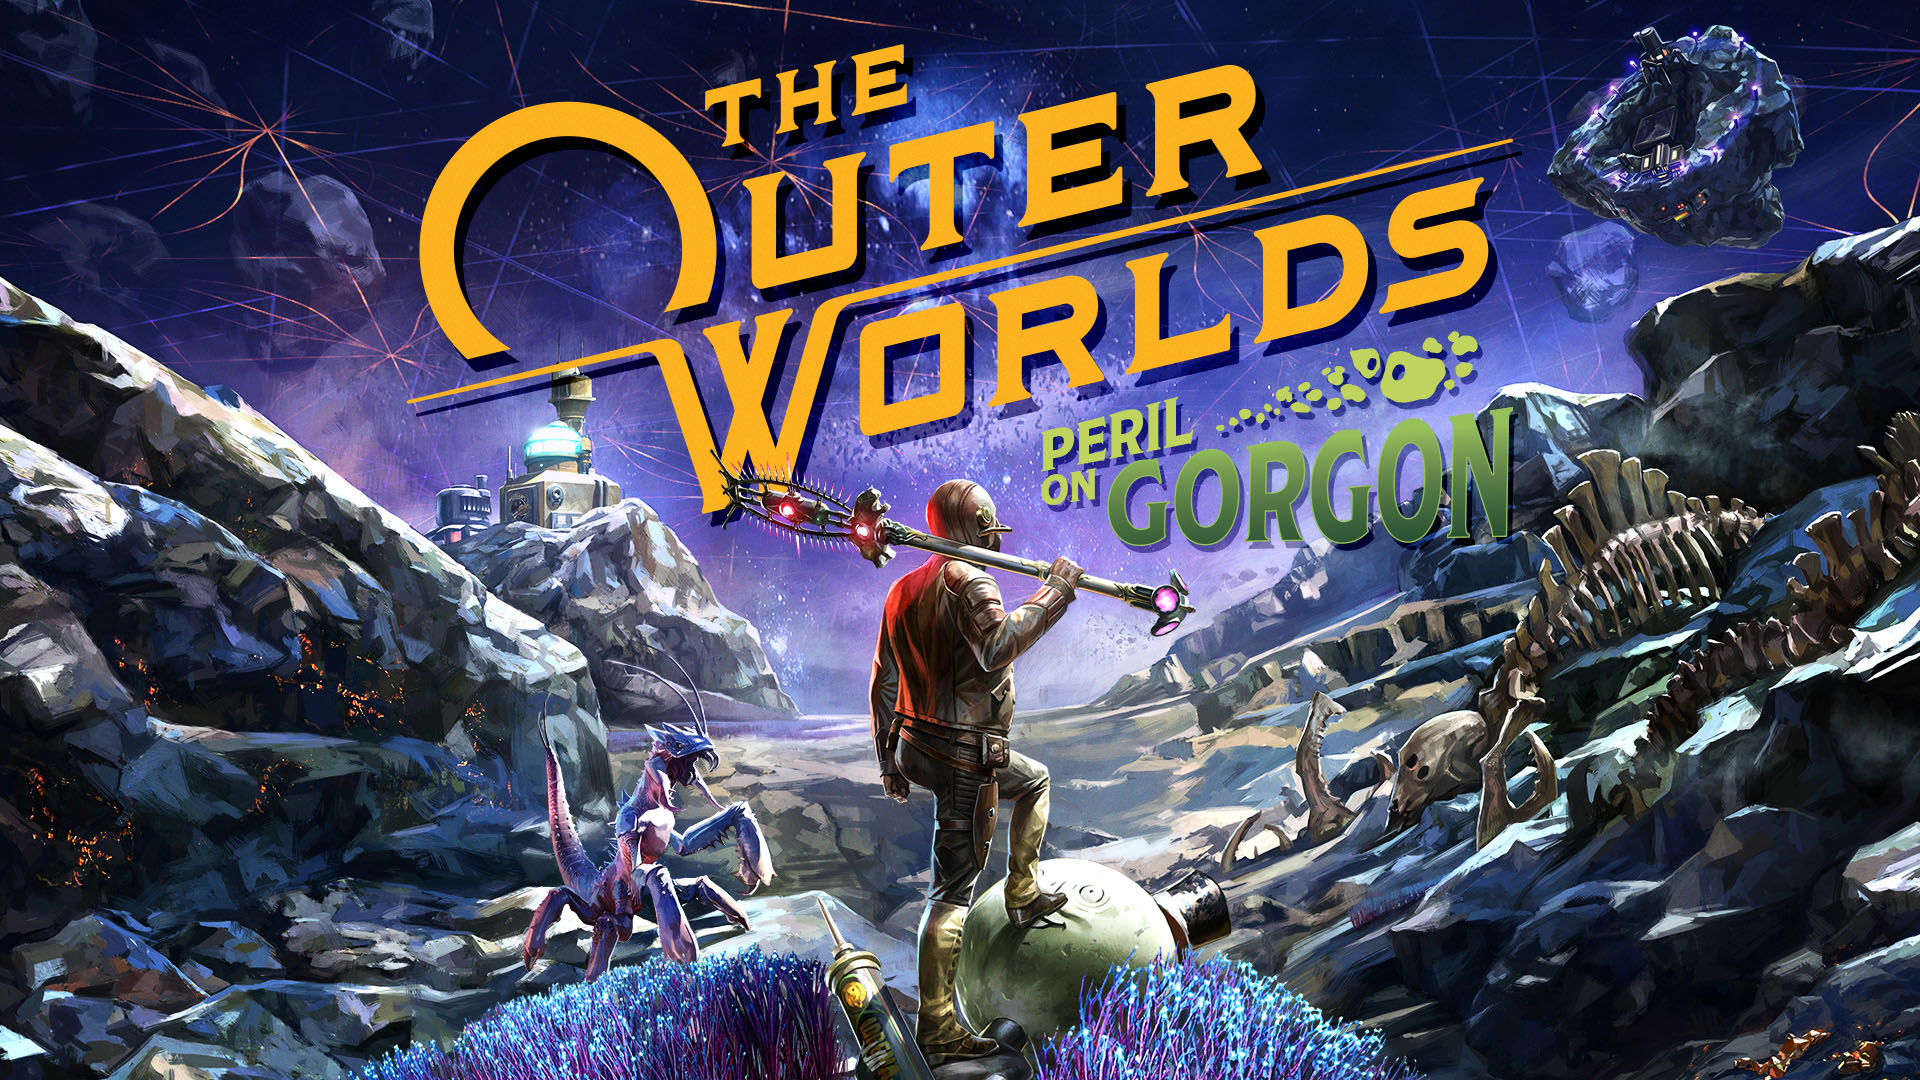 the-outer-worlds-peril-on-gorgon-img01.jpg